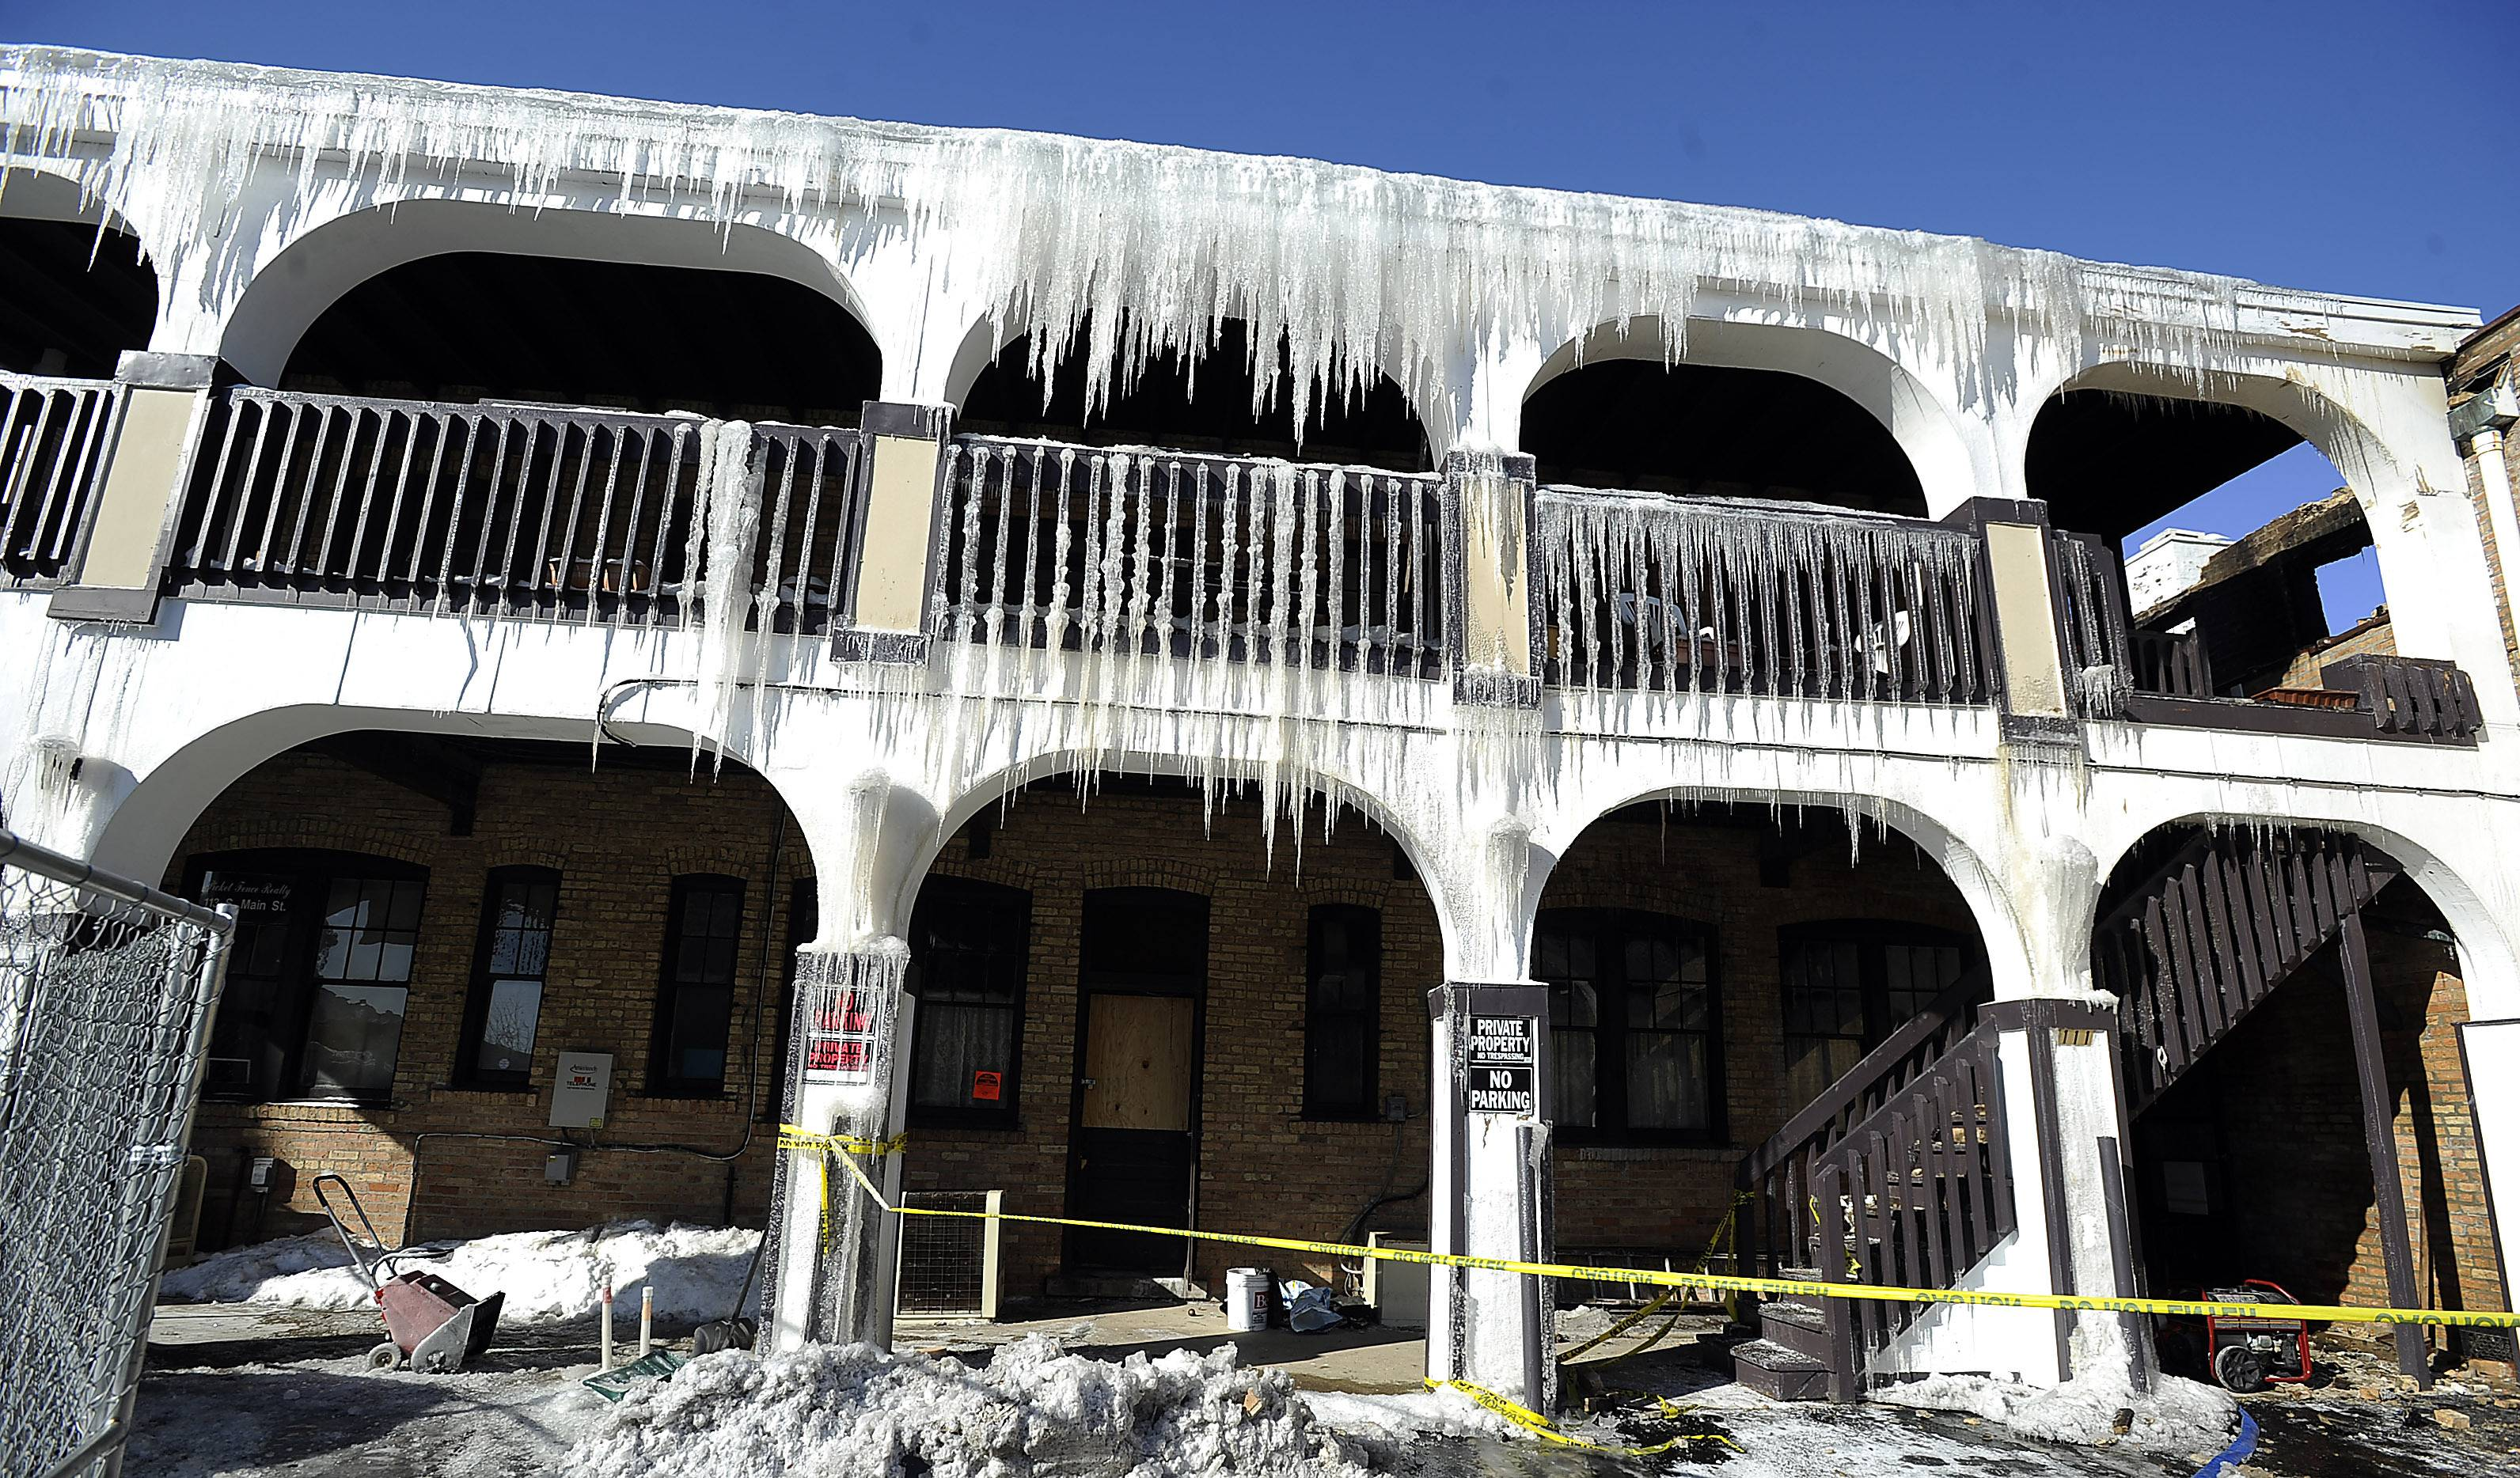 Massive icicles have formed on a 90-year-old building in Mount Prospect where a fire gutted a restaurant, closed other businesses, and left residents homeless.